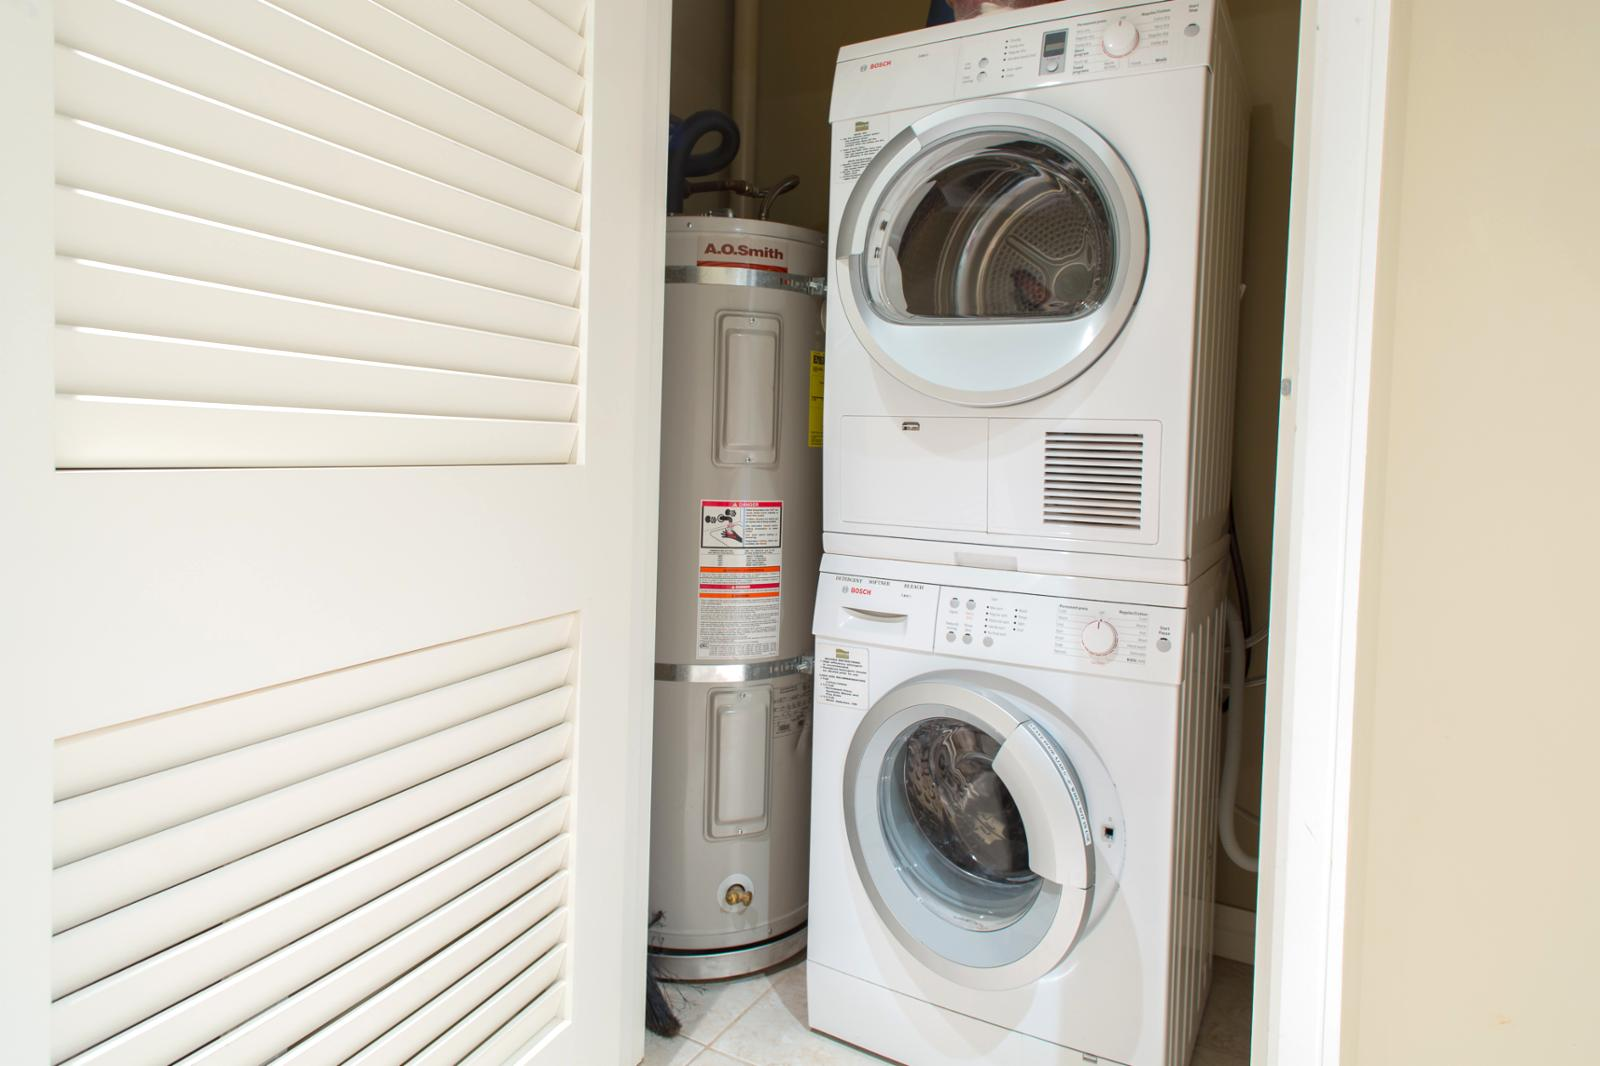 Bosch washer and dryer for your use. The dryer is ventless throughout this resort so allow ample time for drying.